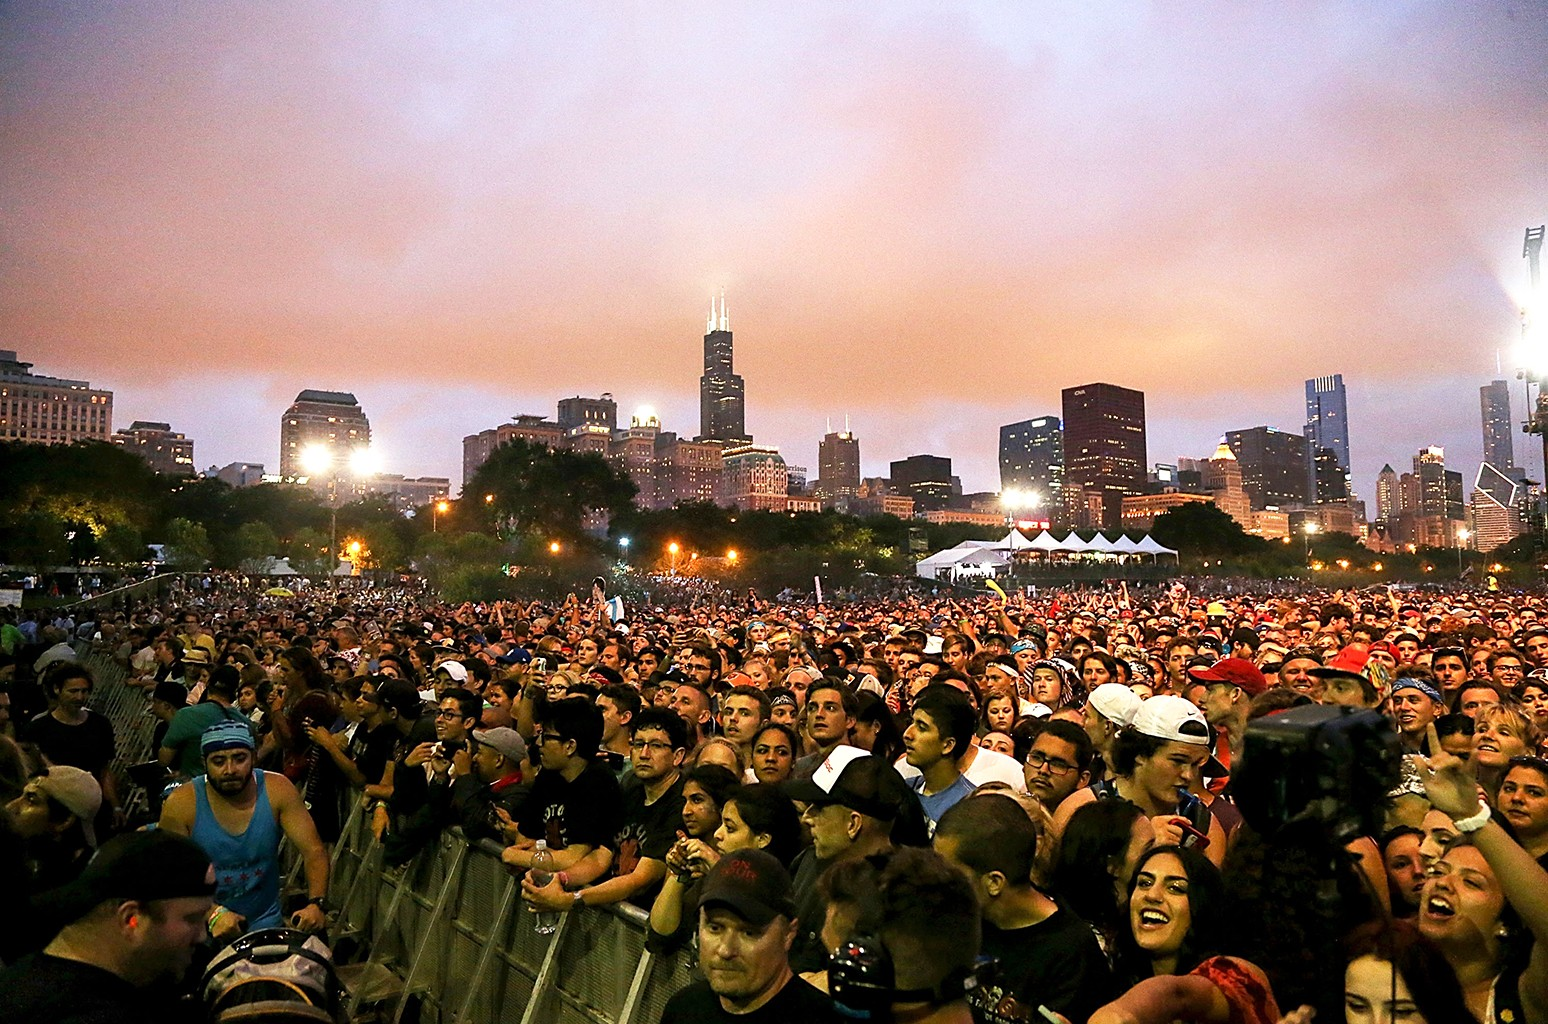 A general view of the atmosphere during Lollapalooza at Grant Park on July 30, 2016 in Chicago.